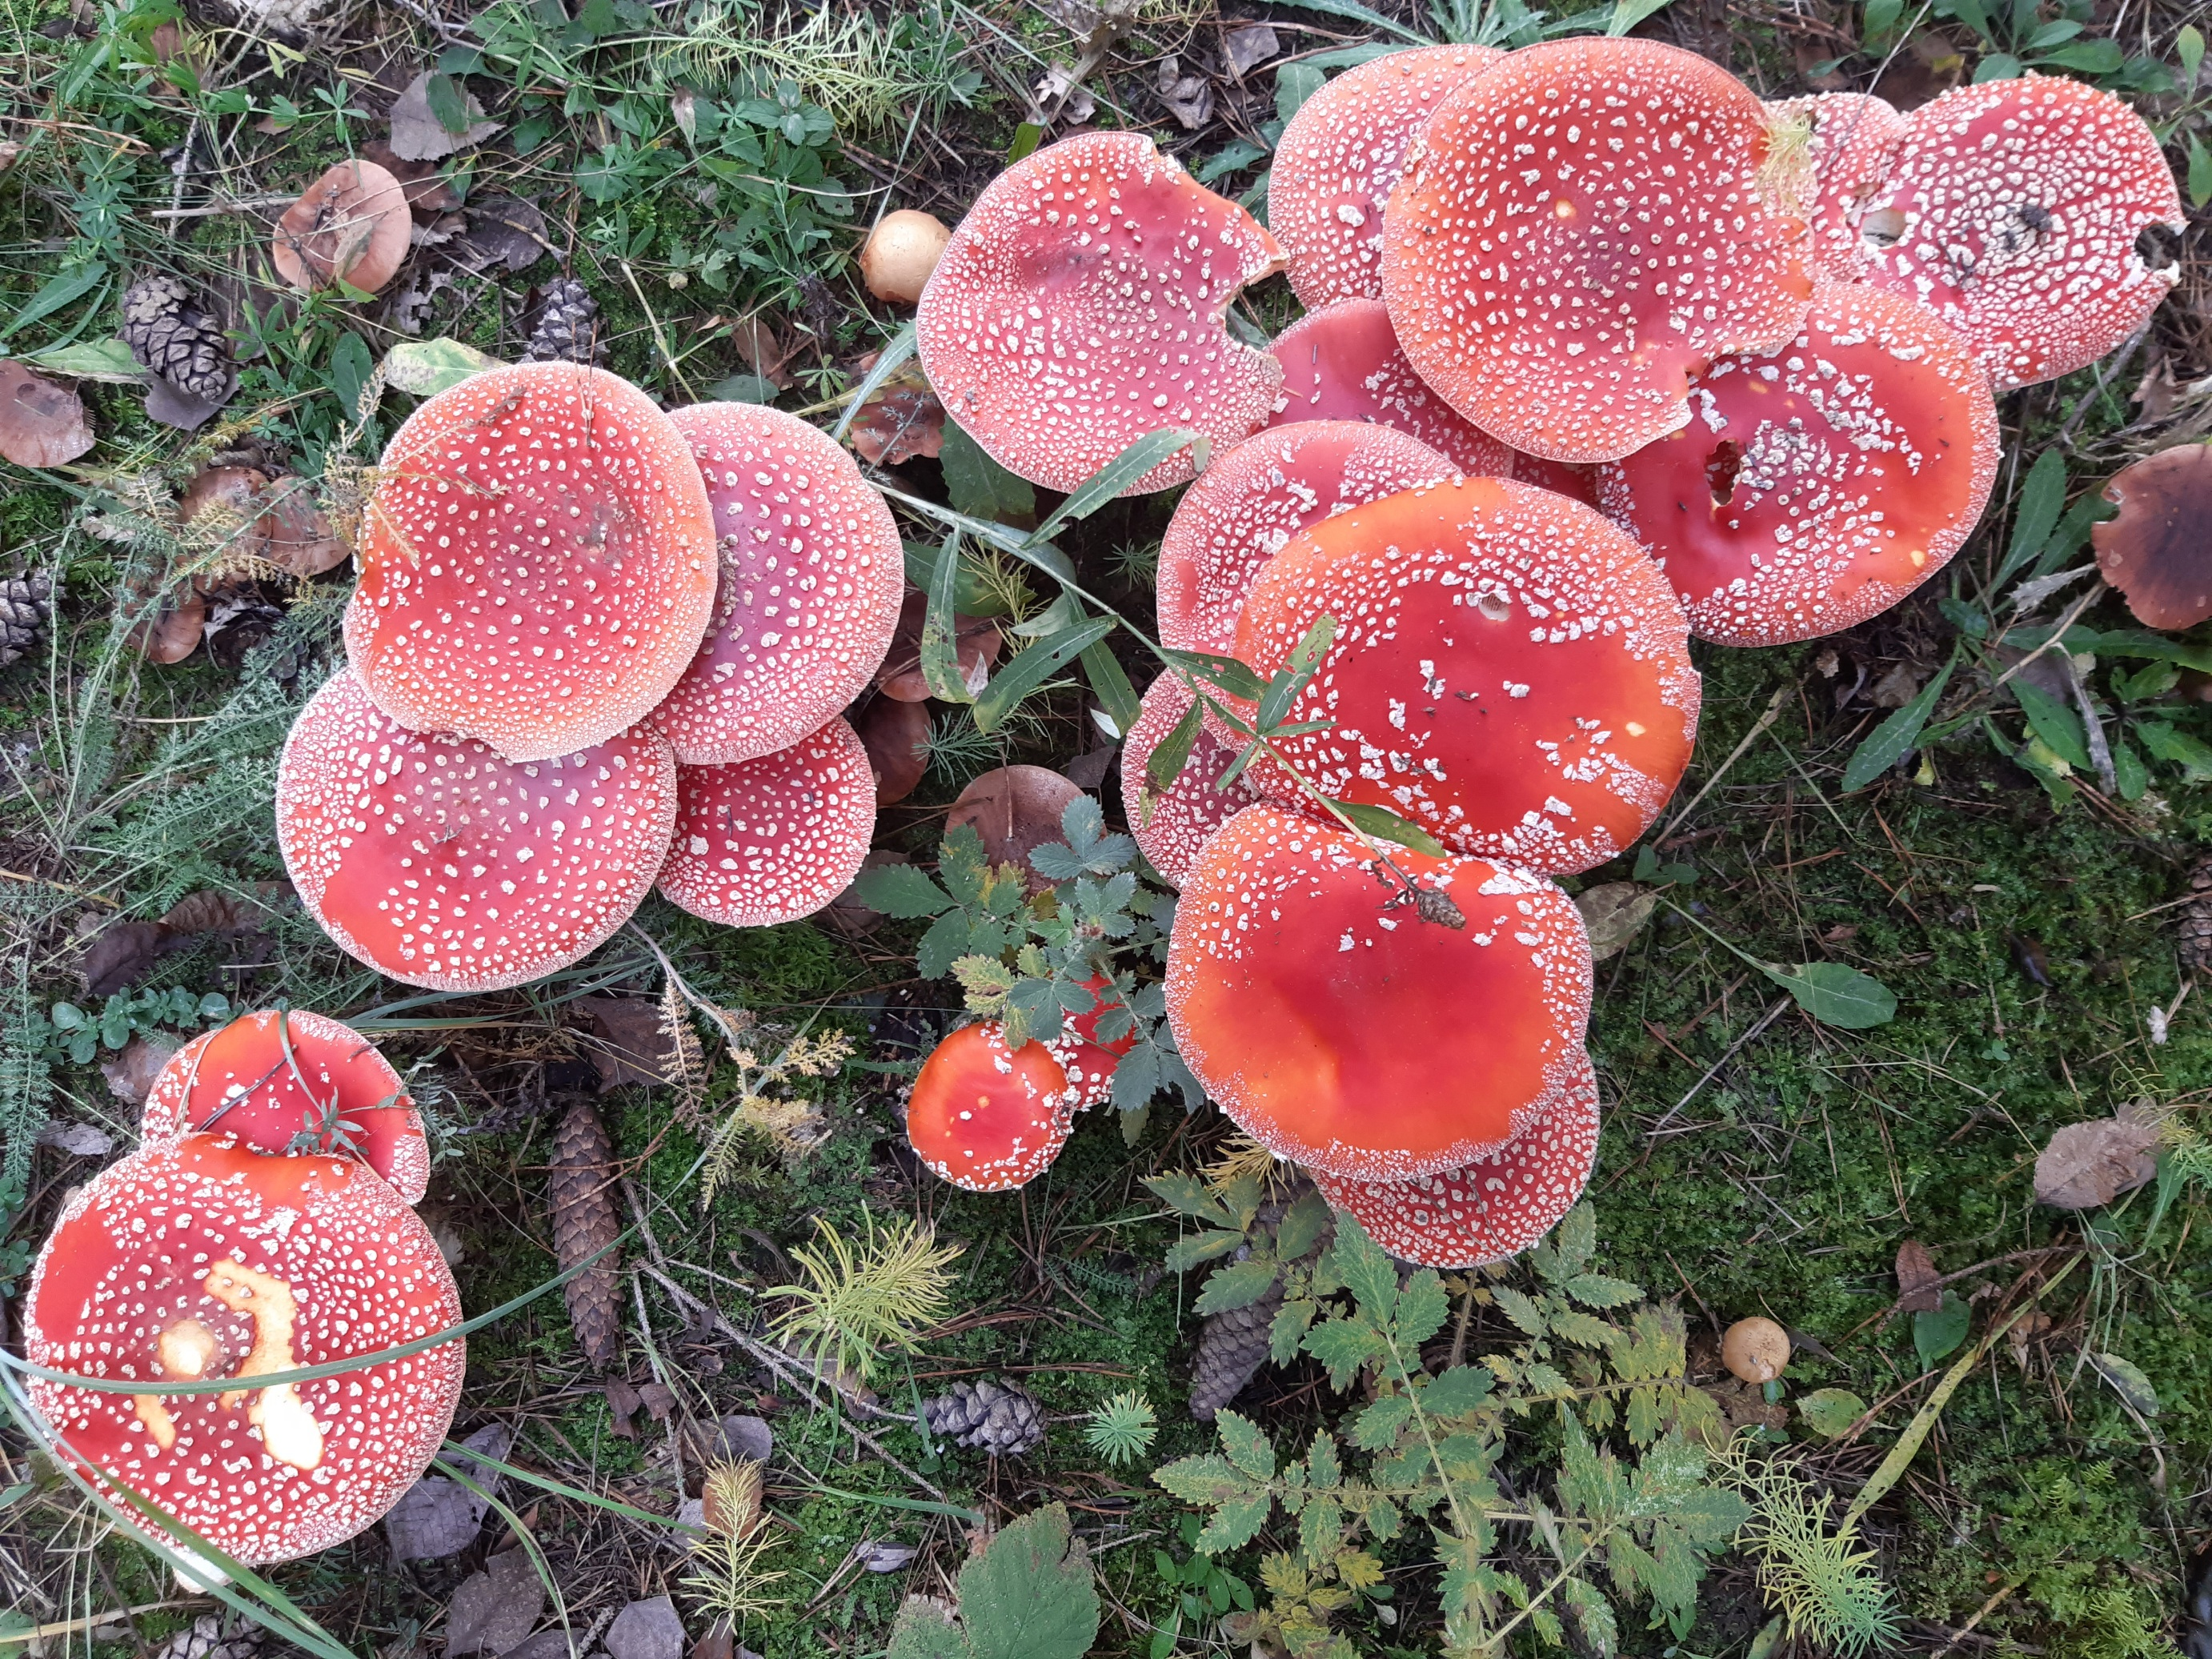 they are going crazy over here!